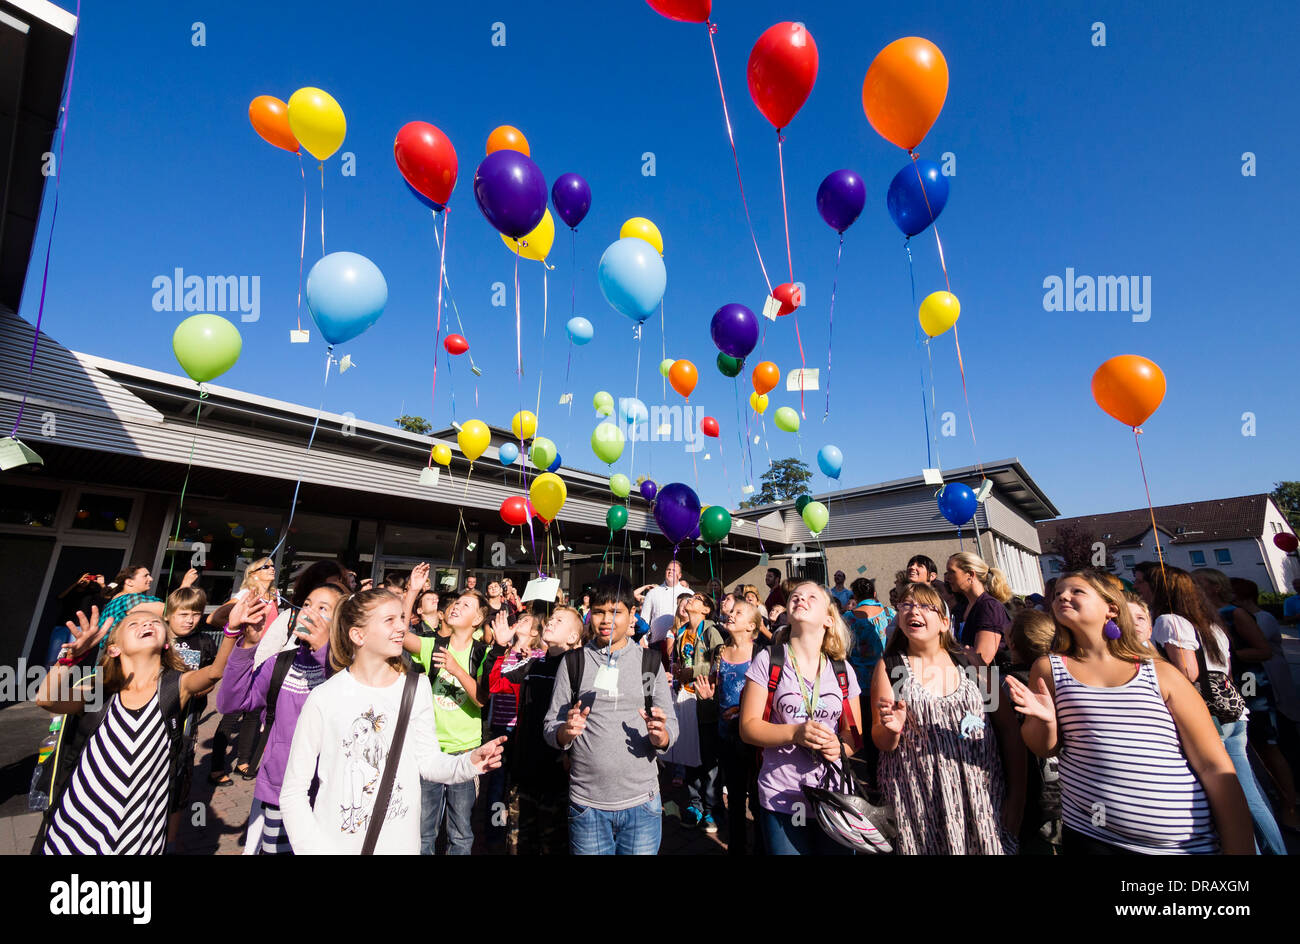 Young students let balloons with their wishes attached rise to the blue sky at the start of their new school year - Stock Image